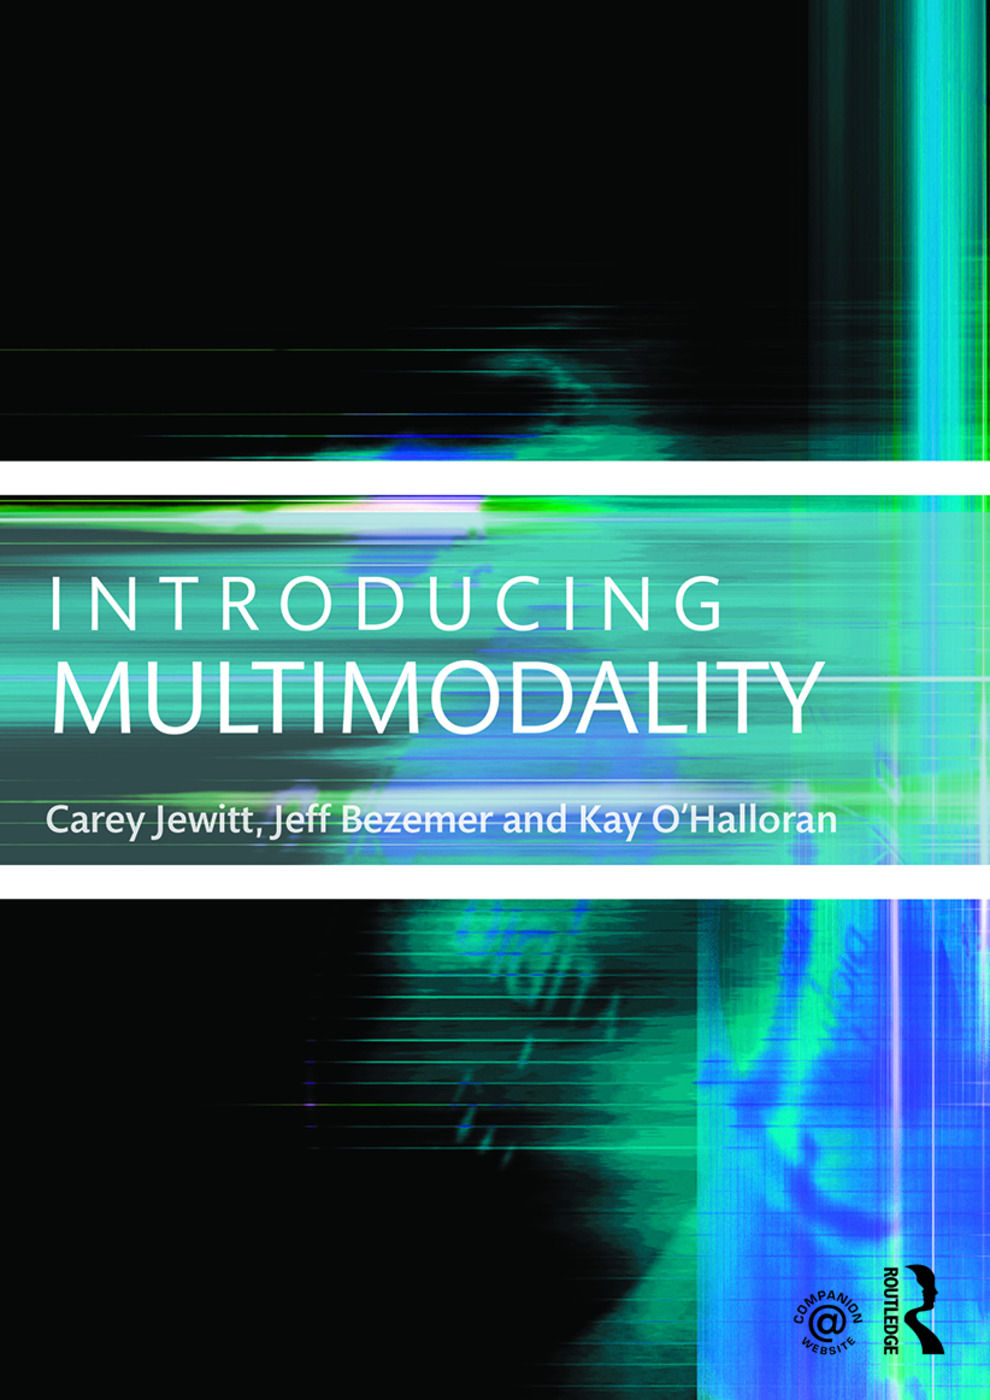 Introducing Multimodality